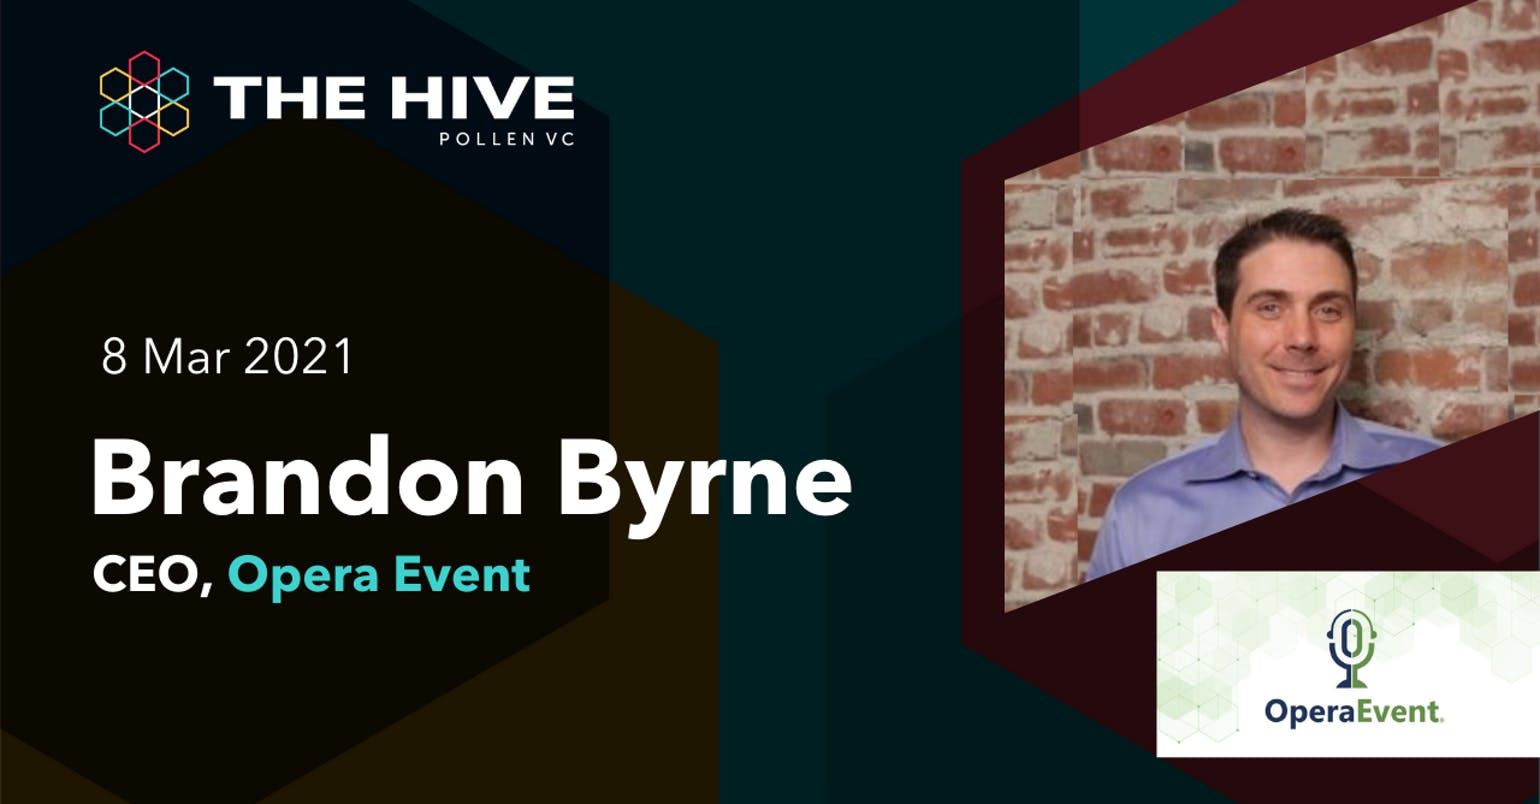 Header of The Hive with Brandon Byrne